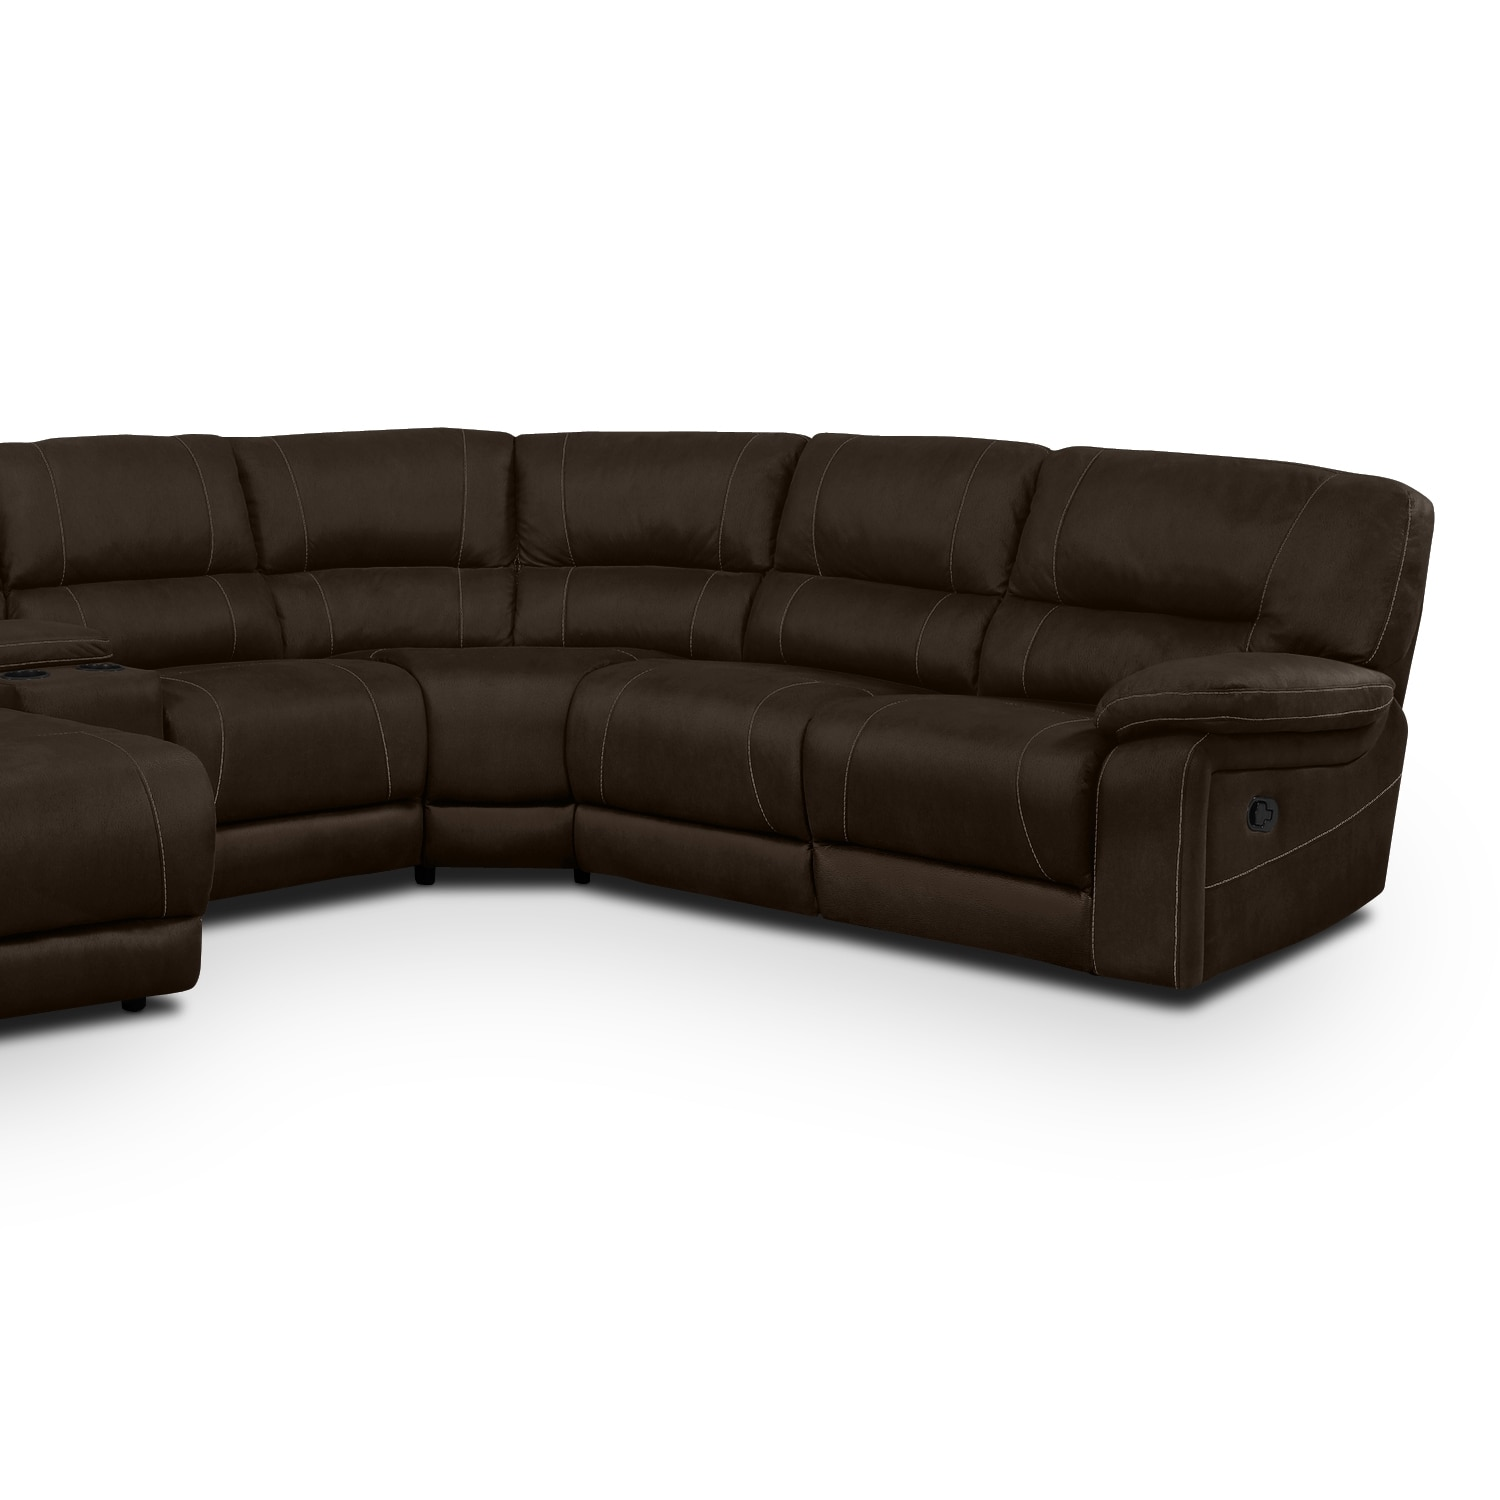 Wyoming 5 Piece Reclining Sectional with Left Facing Chaise